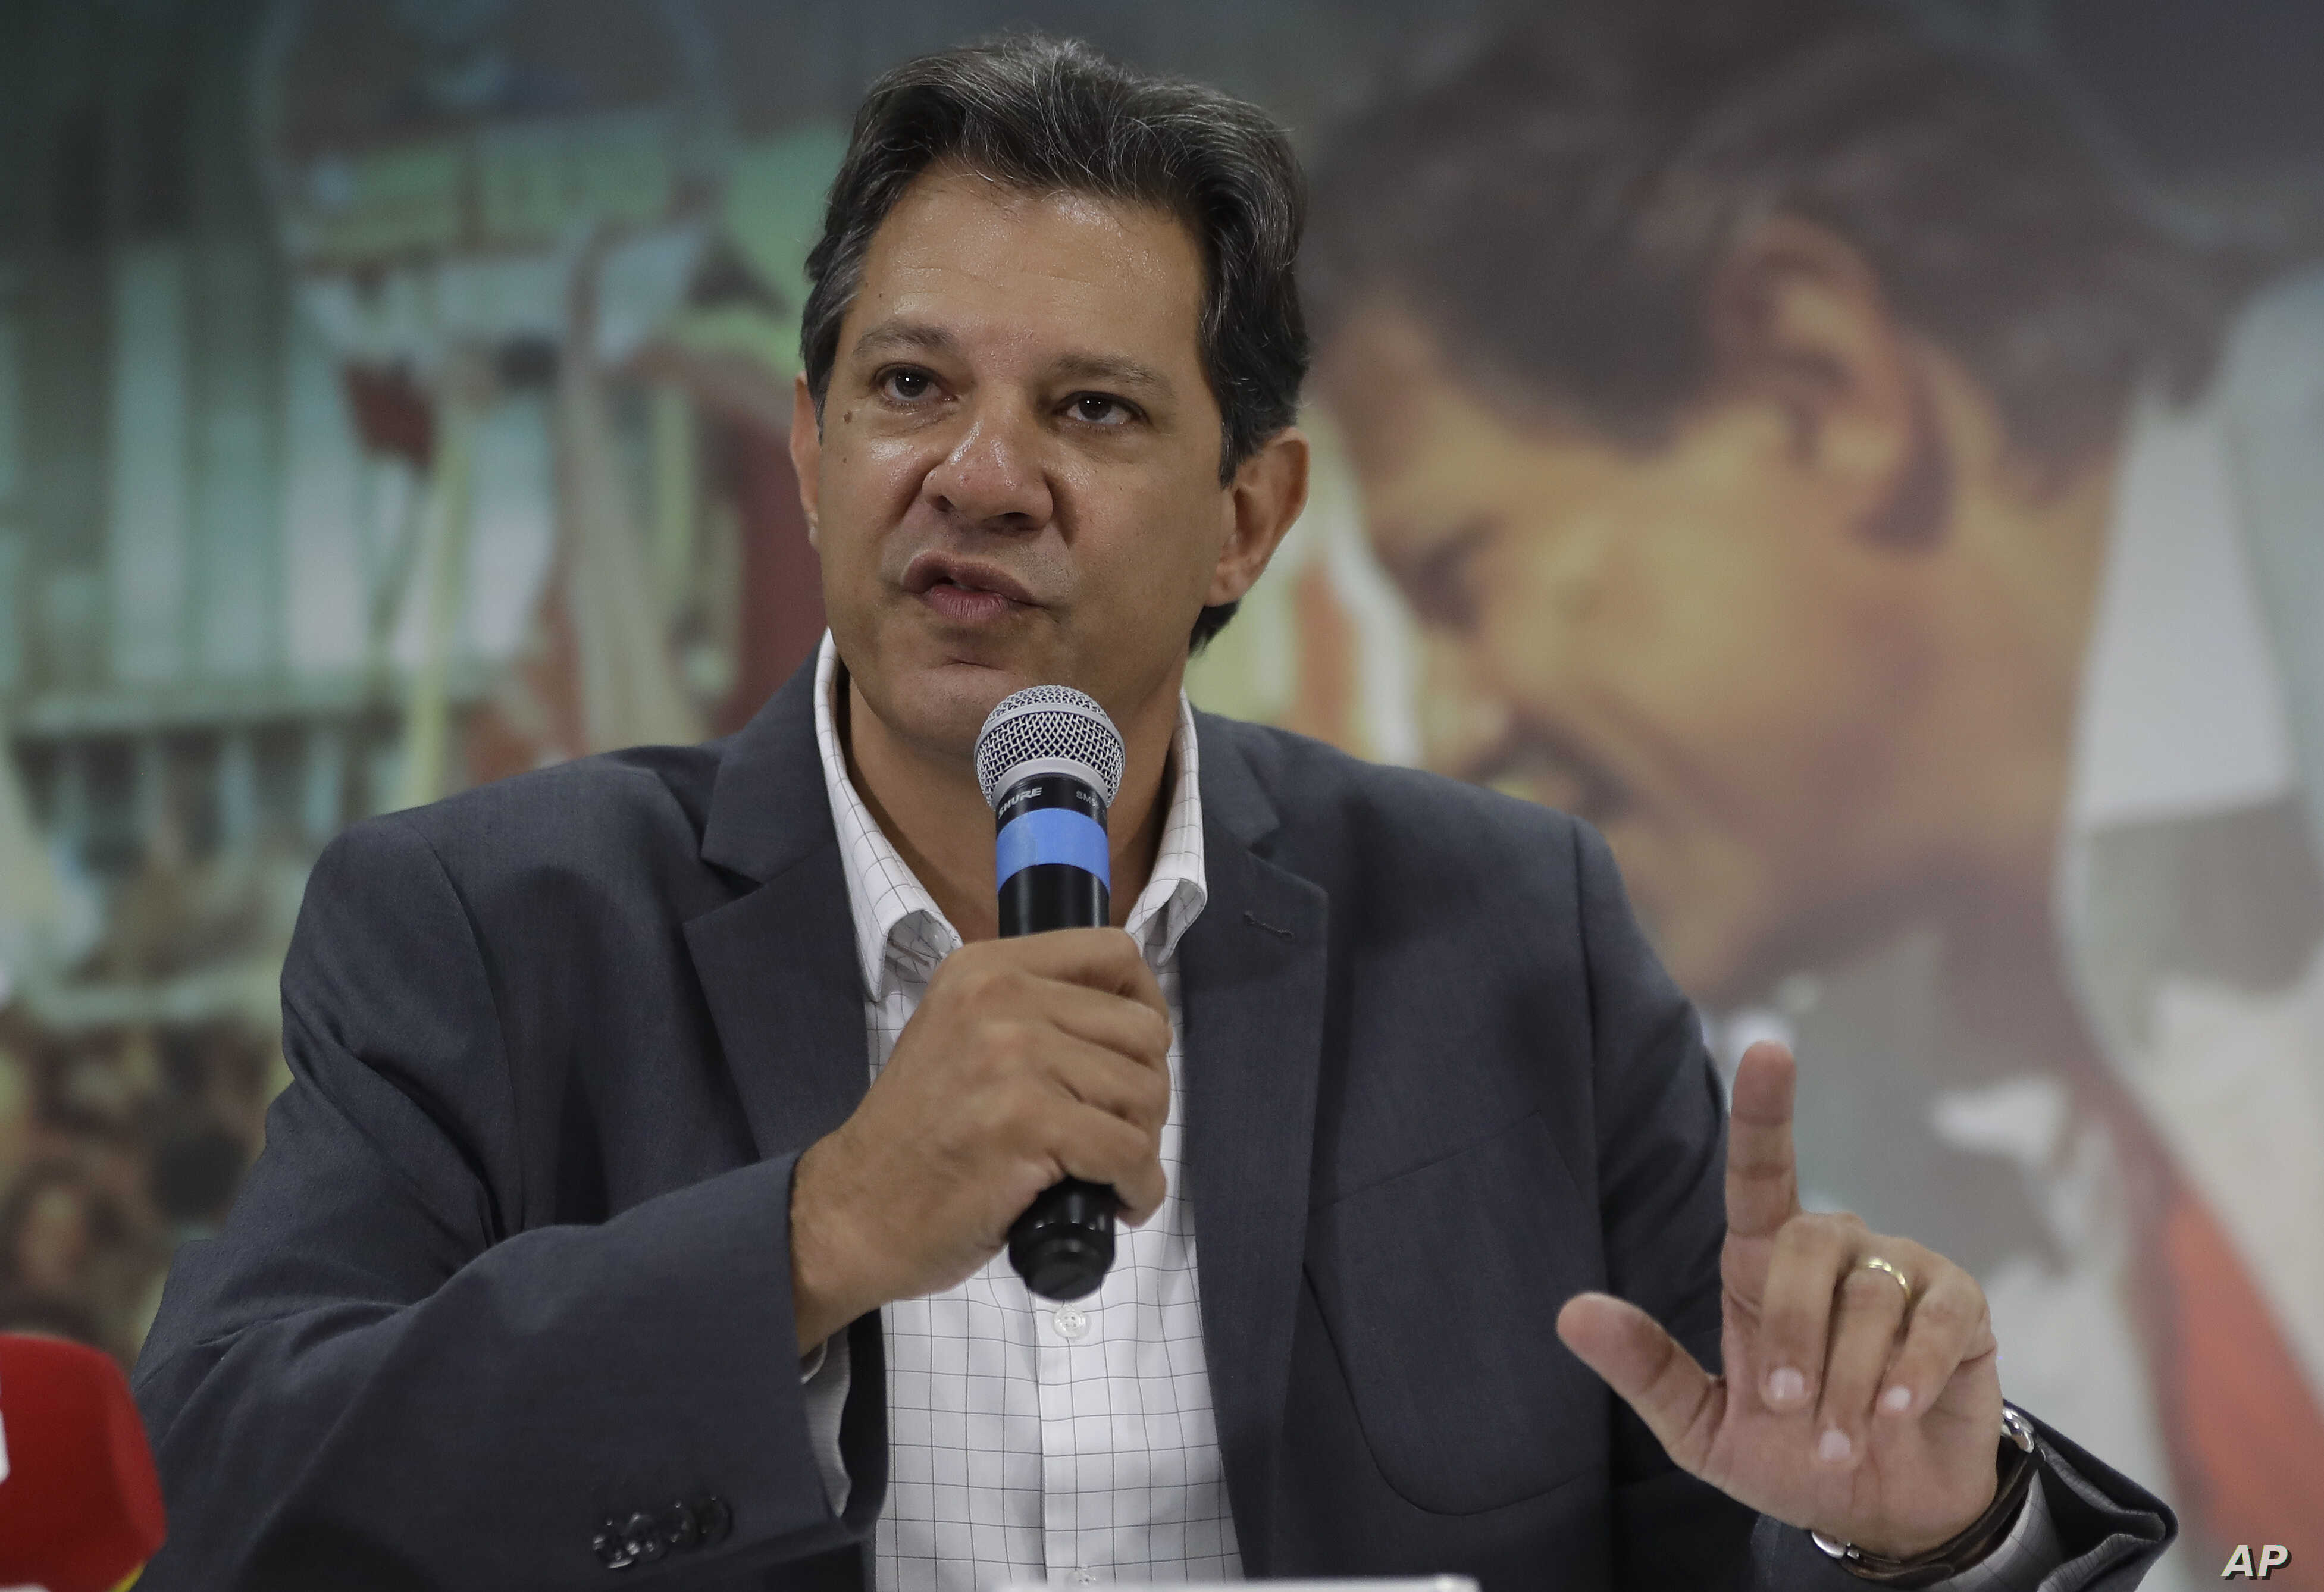 Fernando Haddad, presidential candidate for the Workers' Party, speaks to foreign journalists in Sao Paulo, Brazil, Oct. 18, 2018. Haddad will face Jair Bolsonaro in a presidential runoff on Oct. 28.